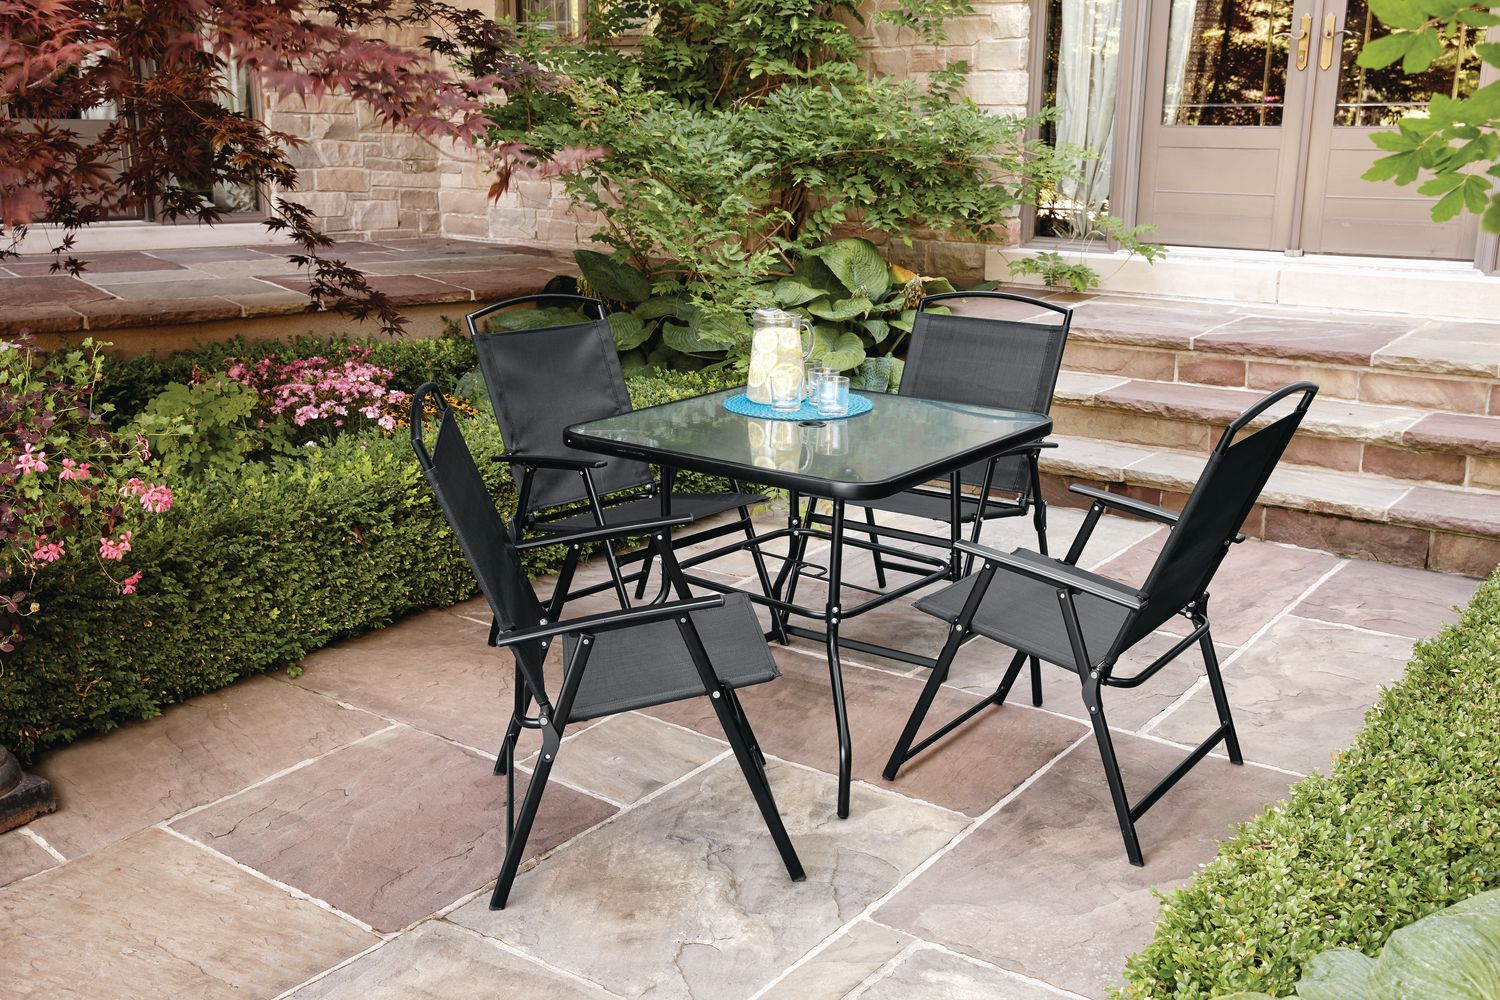 Mainstays Cranston 5 Piece Folding Dining Set For Balcony Dining